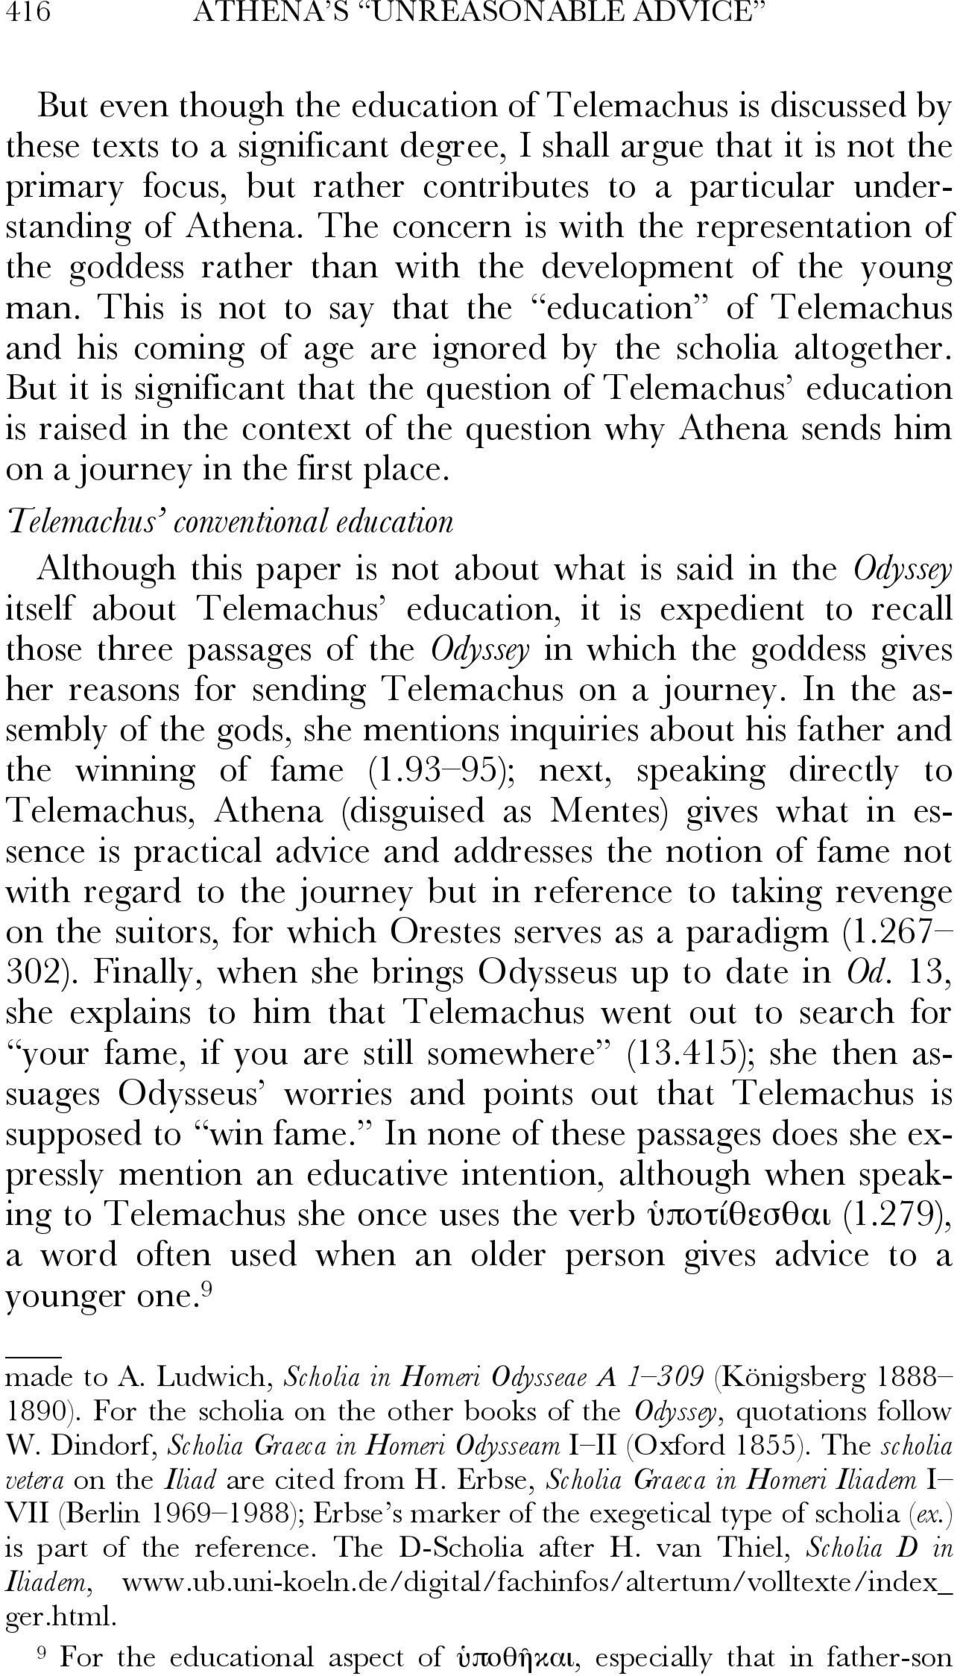 This is not to say that the education of Telemachus and his coming of age are ignored by the scholia altogether.